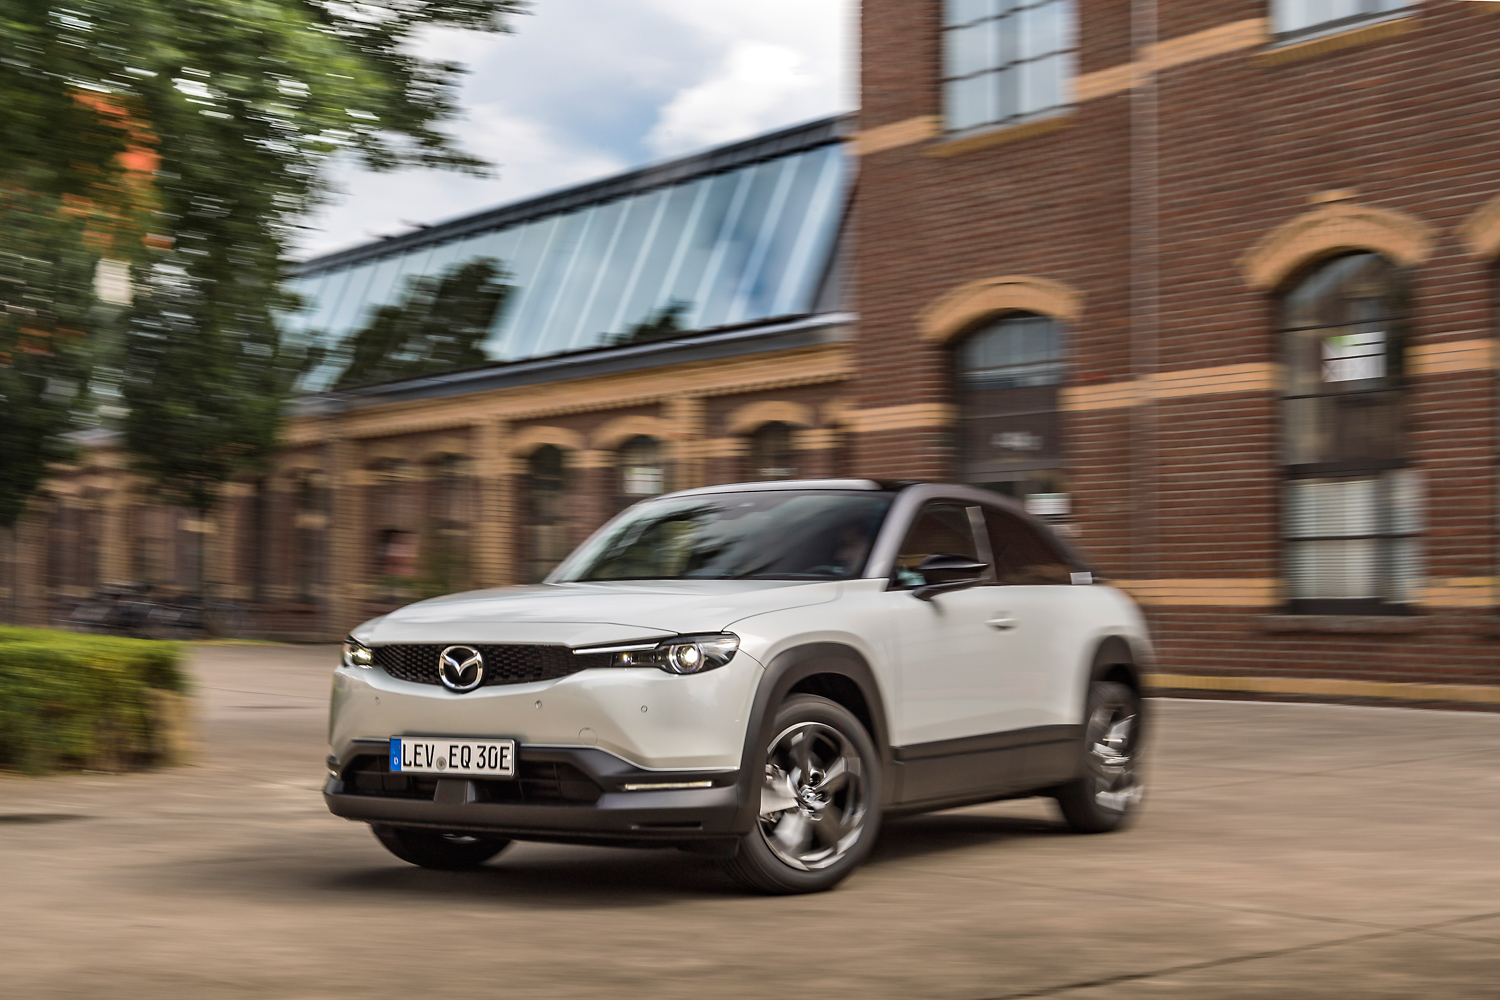 Car News | Mazda Ireland 211-registration discounts | CompleteCar.ie